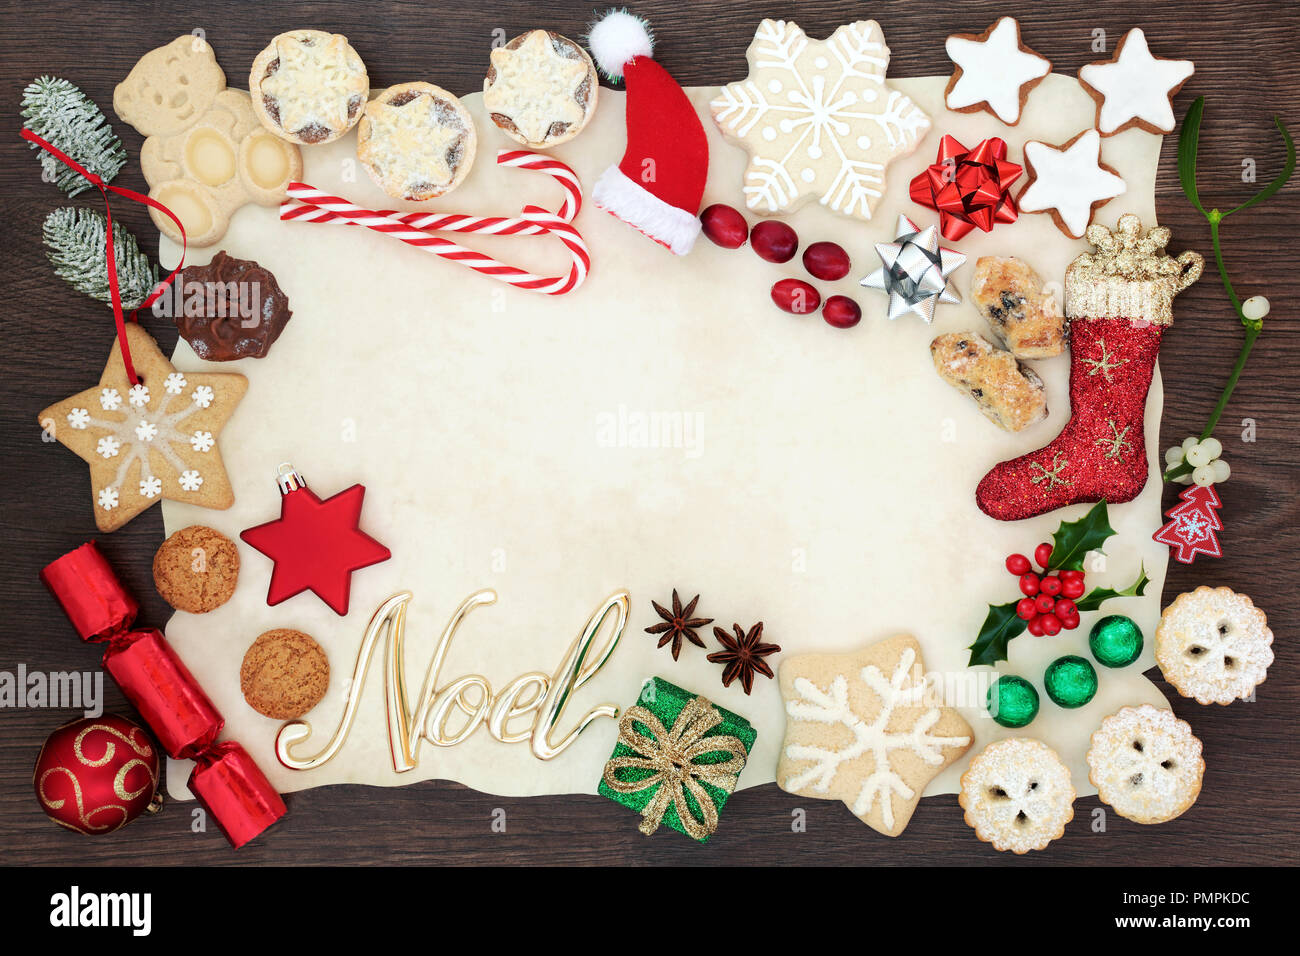 Christmas and noel background border including tree decorations, biscuits, cakes, fruit, chocolates and winter flora on parchment paper on rustic oak. - Stock Image